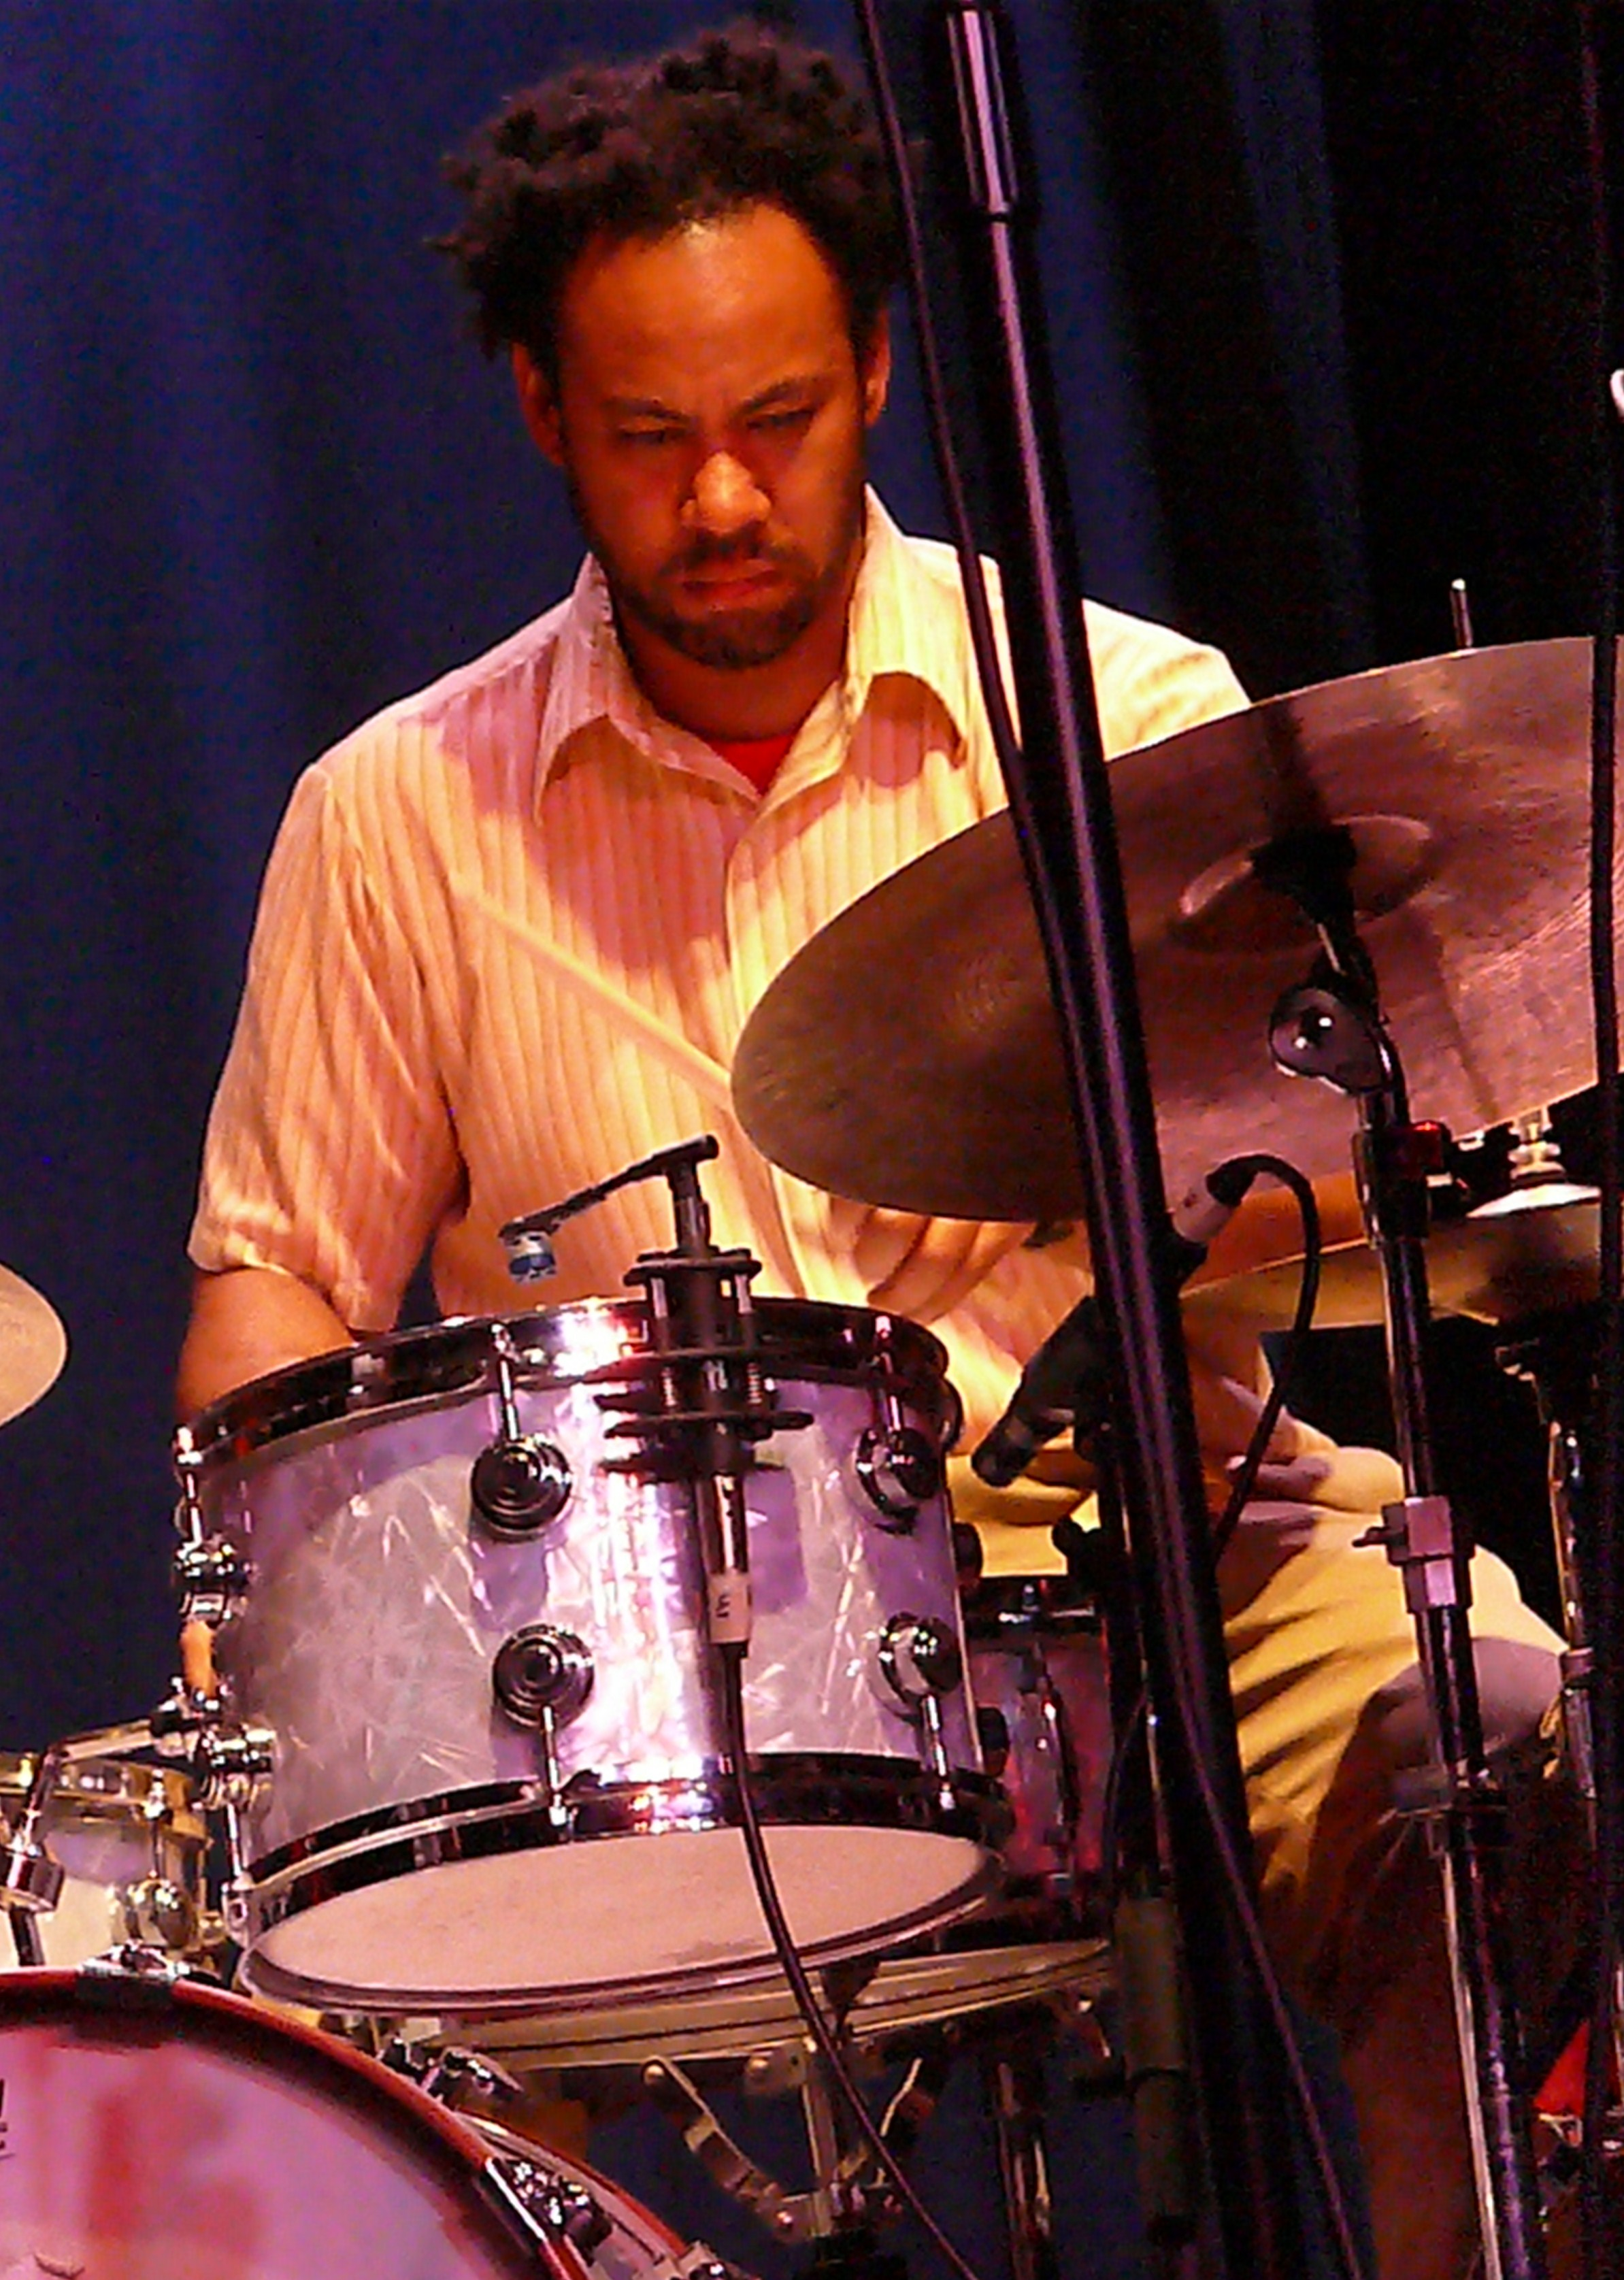 Mike Reed at the 2010 Vision Festival in New York